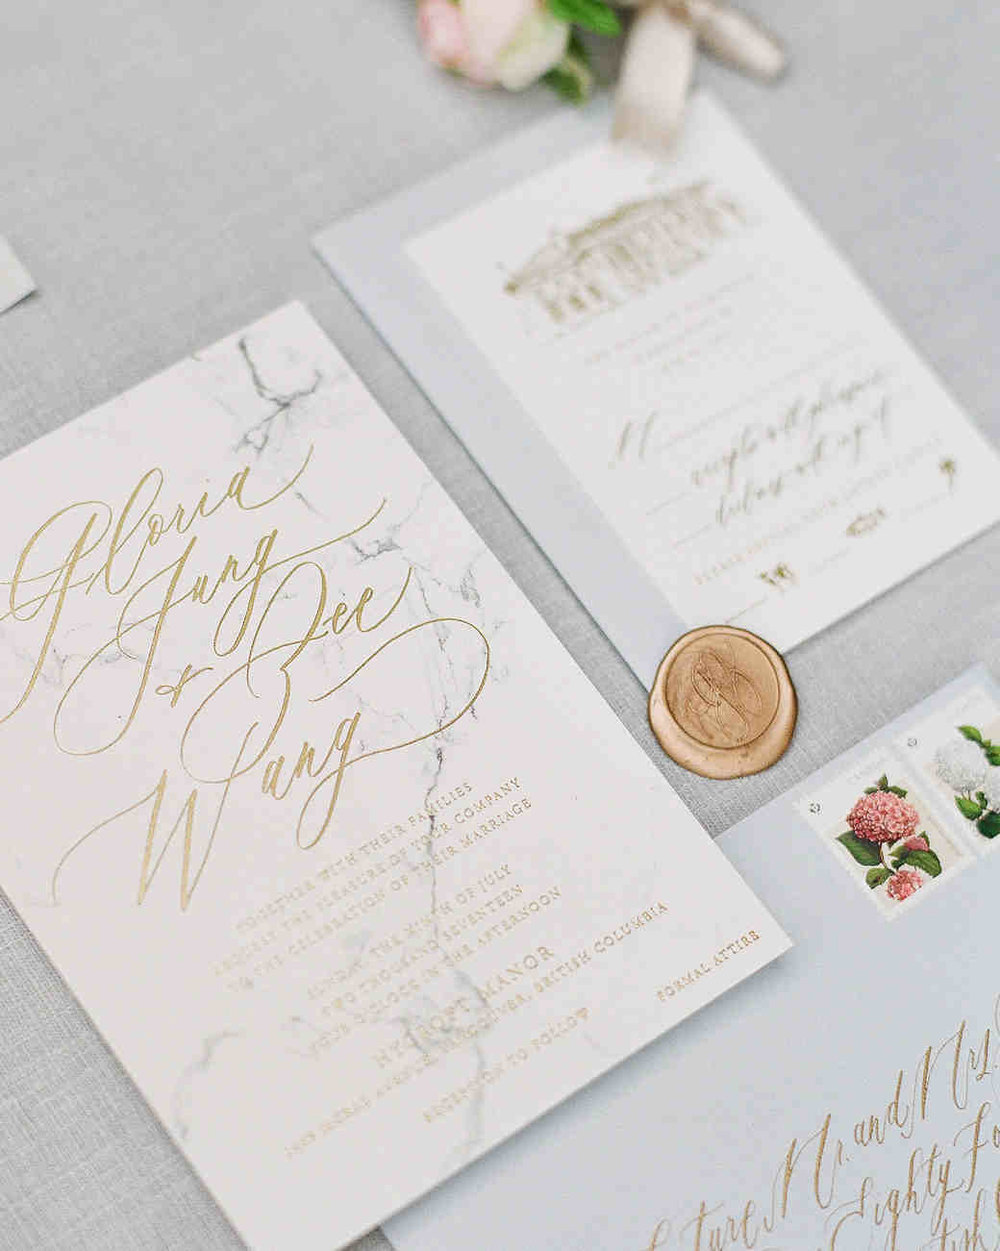 gloria-zee-wedding-stationery-f0130-6482616-0318_vert.jpg